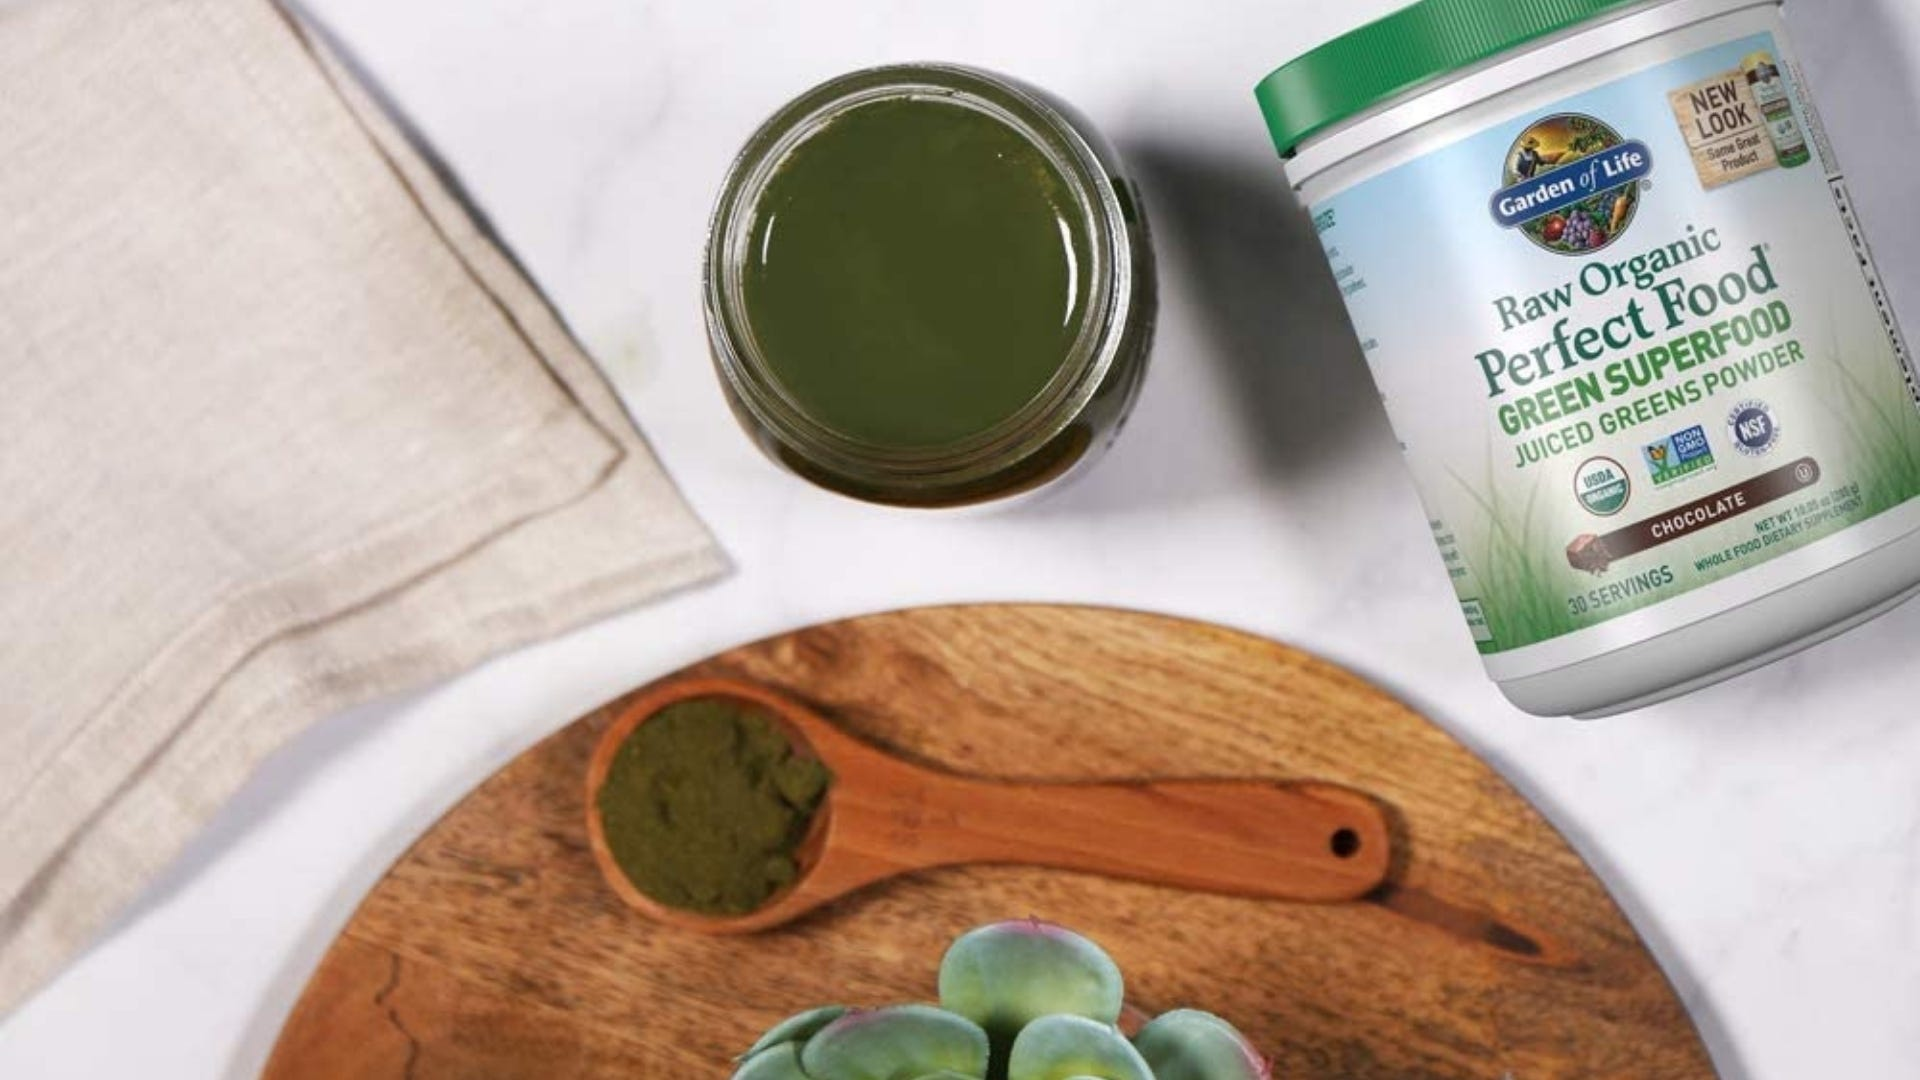 A bottle of Garden of Life Raw Organic Greens on a table next to a green smoothie.